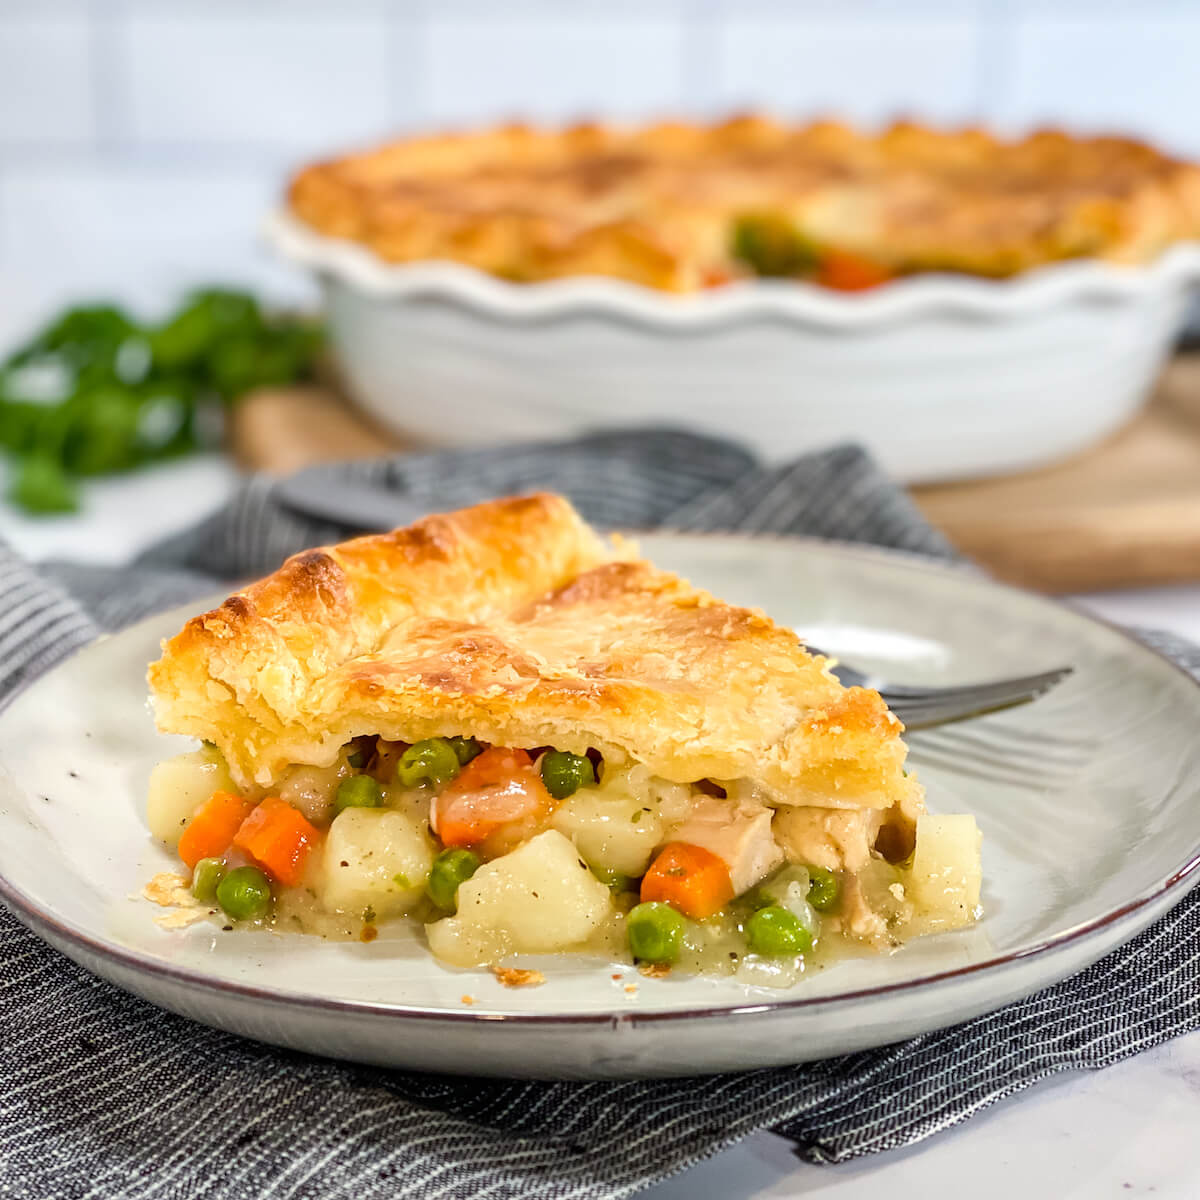 slice of pot pie on plate